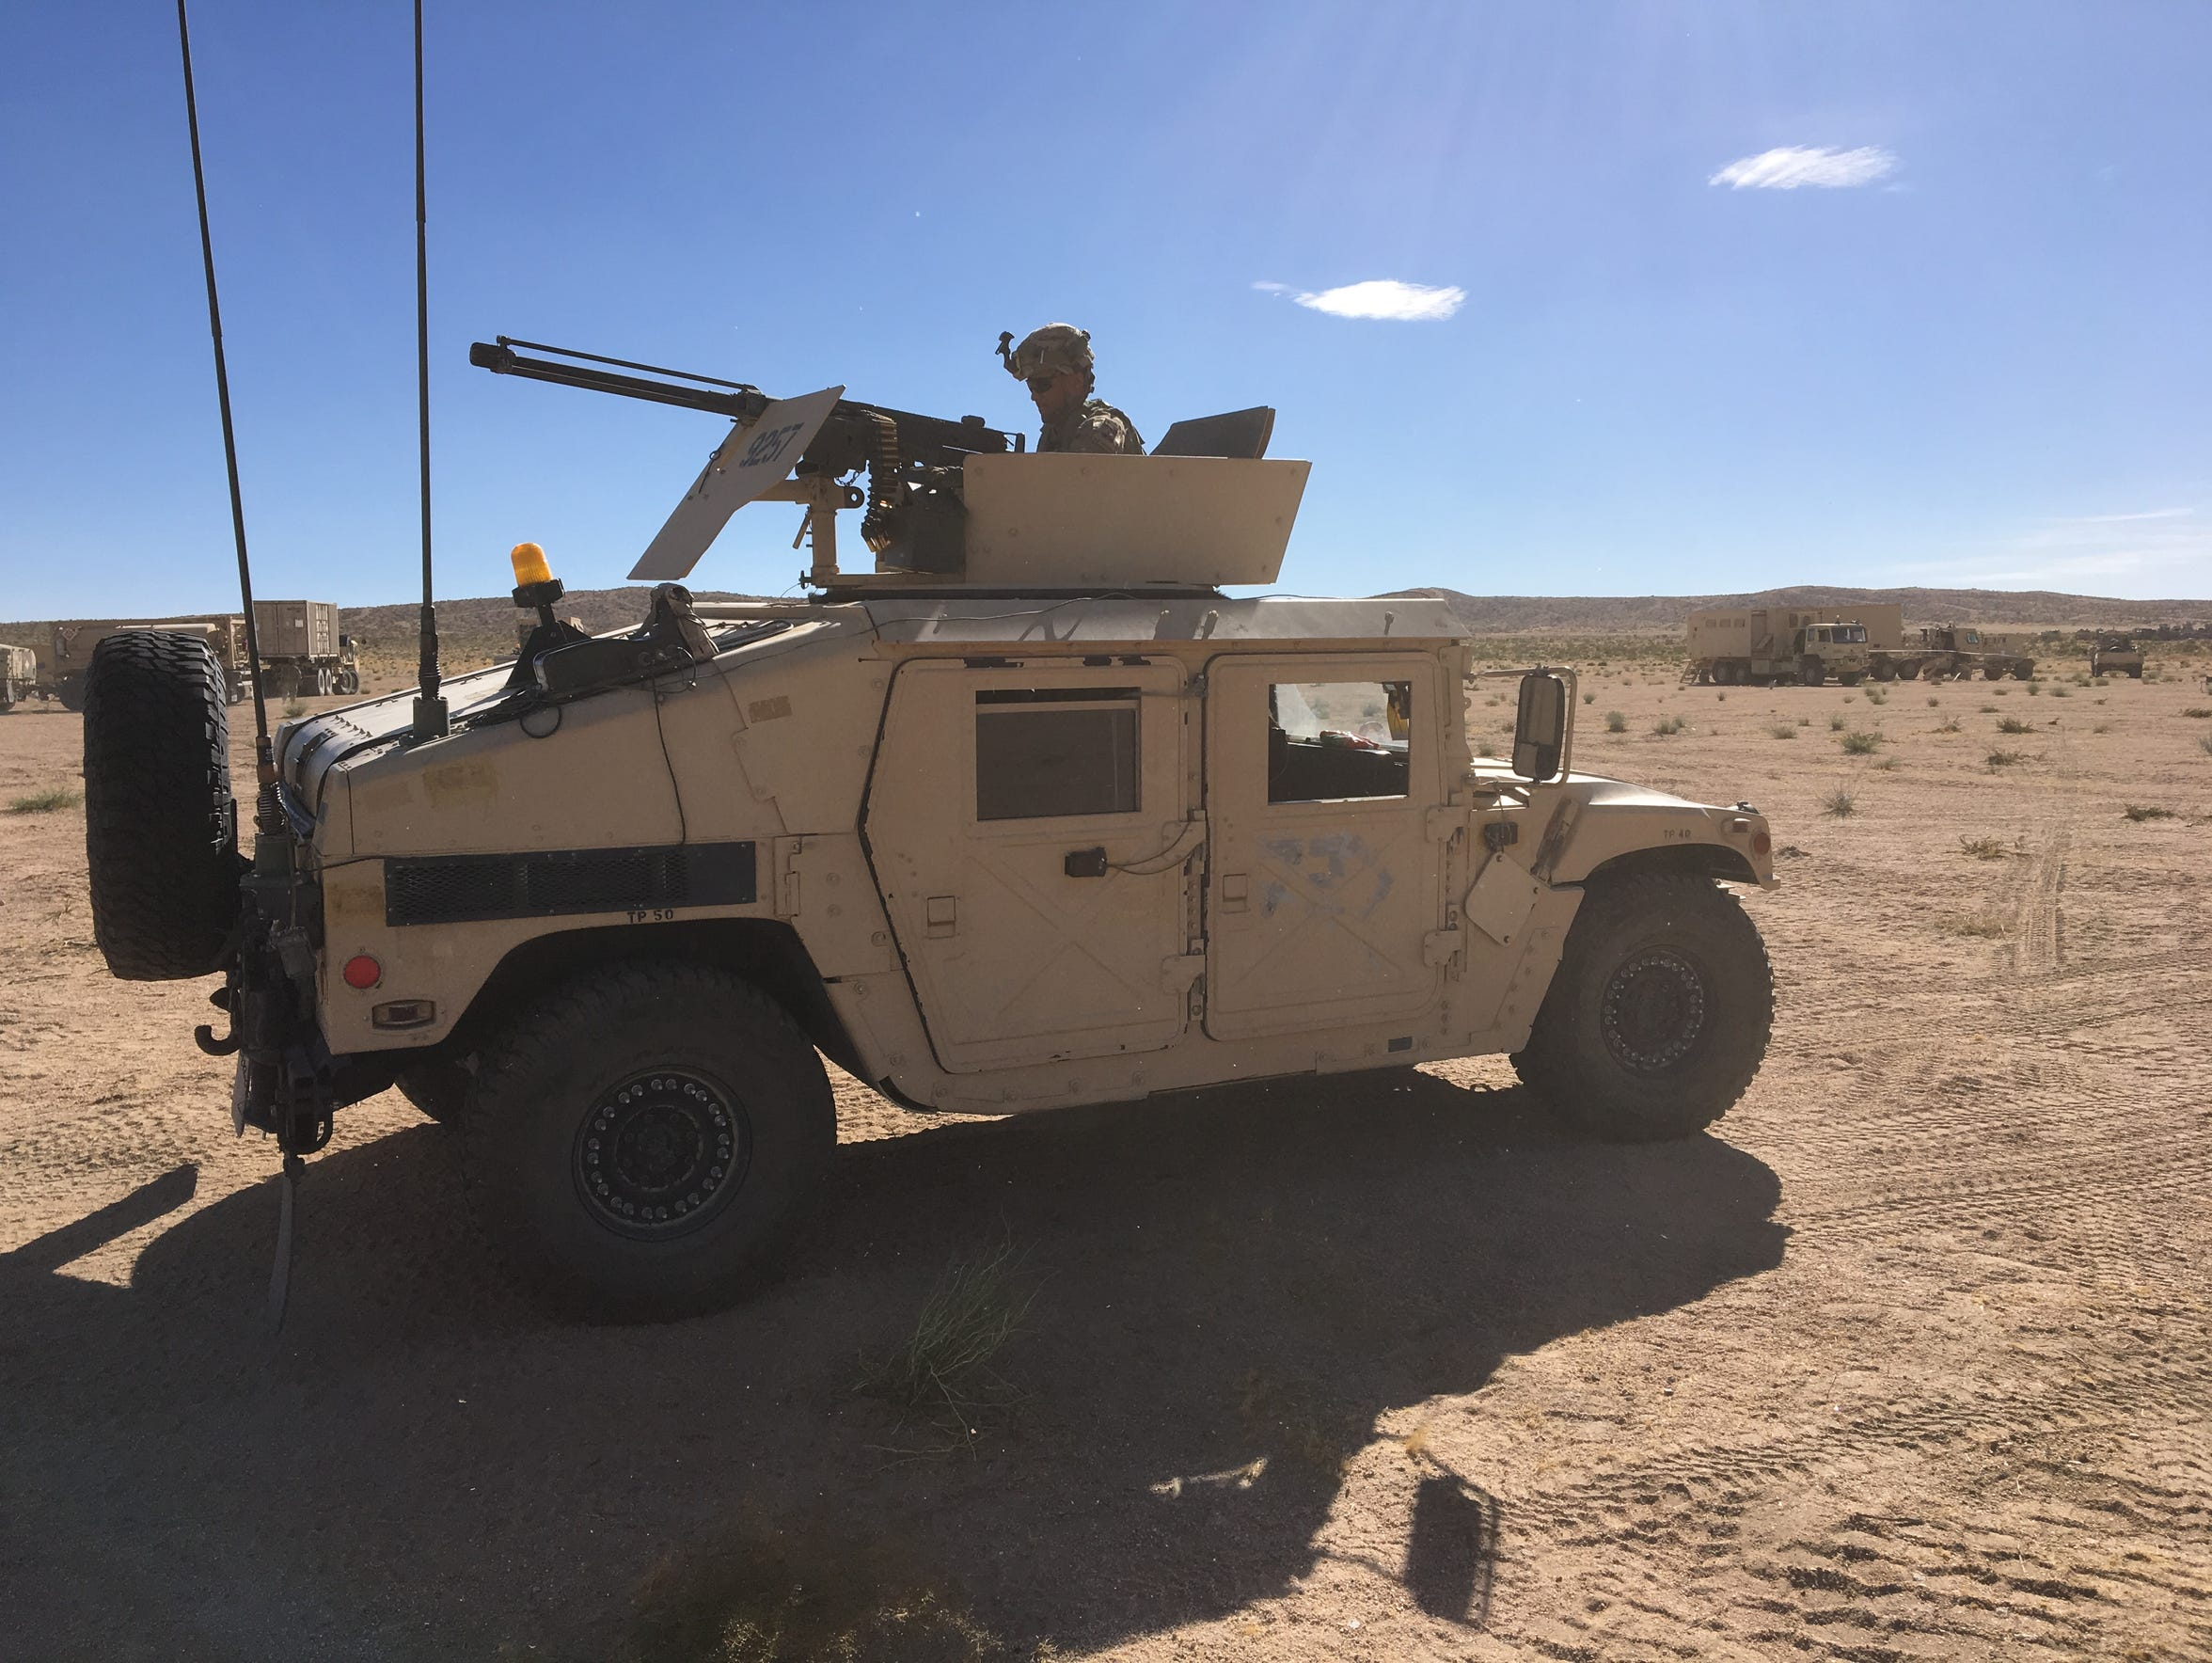 A soldier provides security at NTC during the realistic